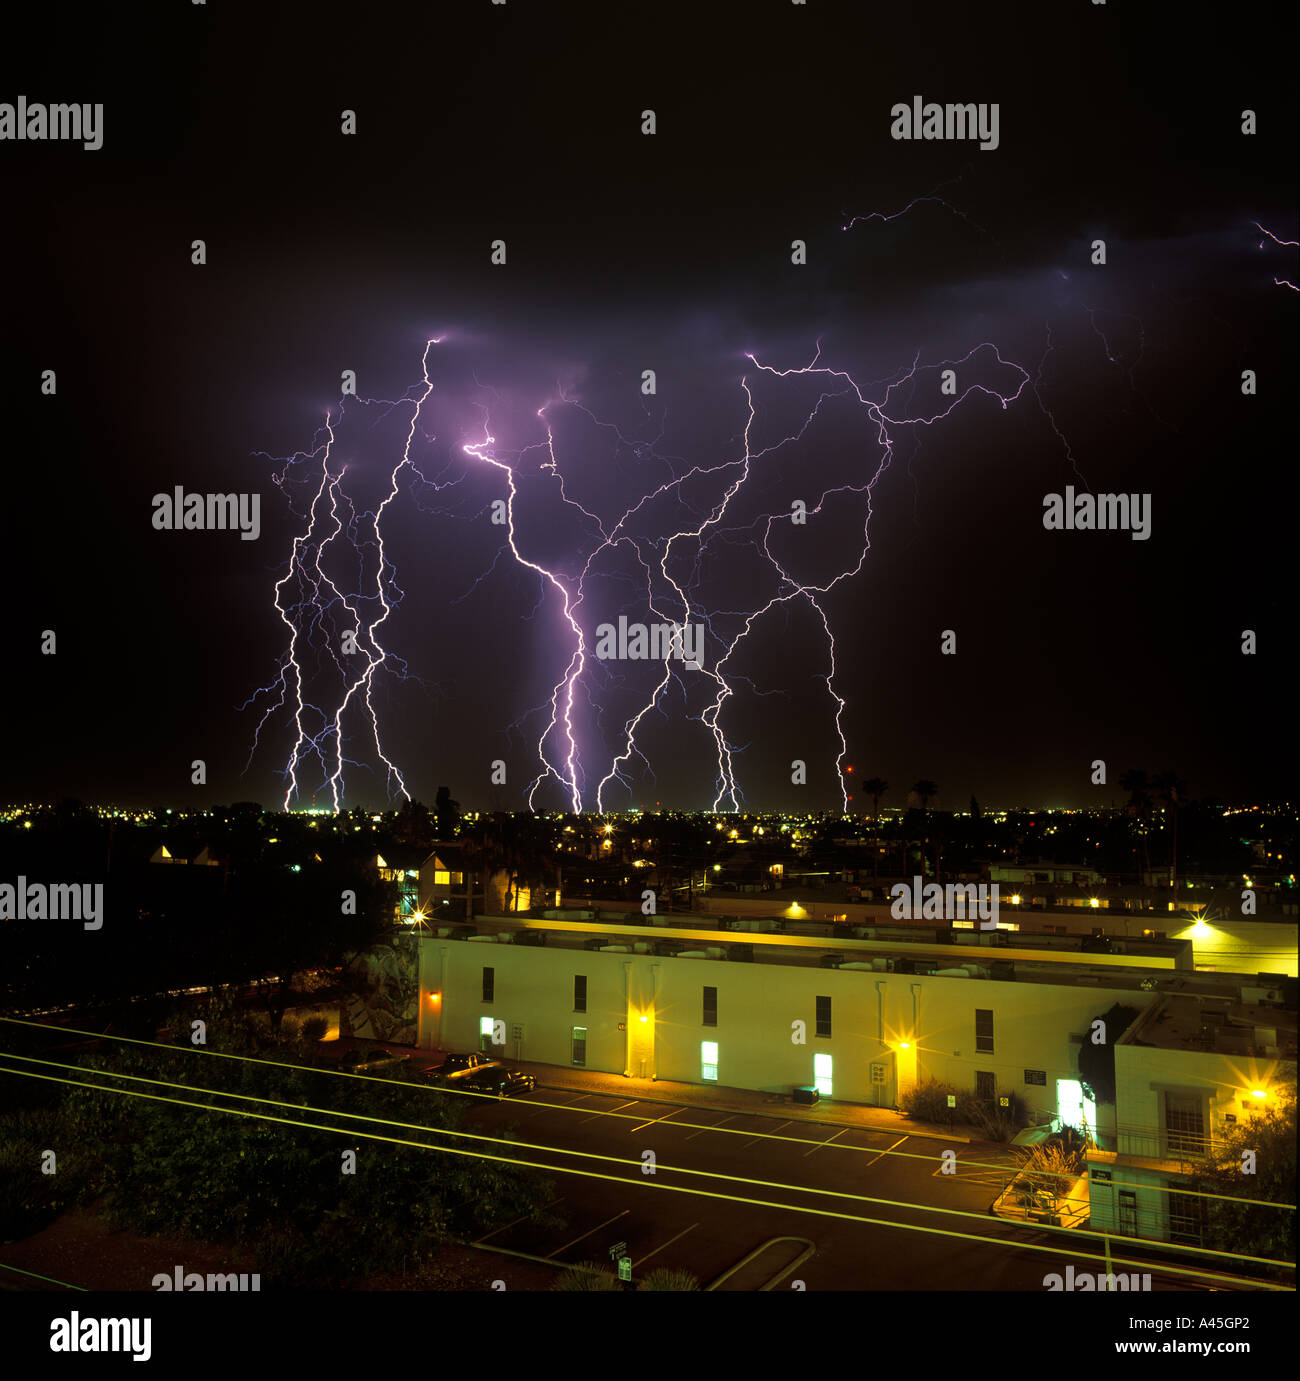 lightning striking over the city of tucson arizona usa during a